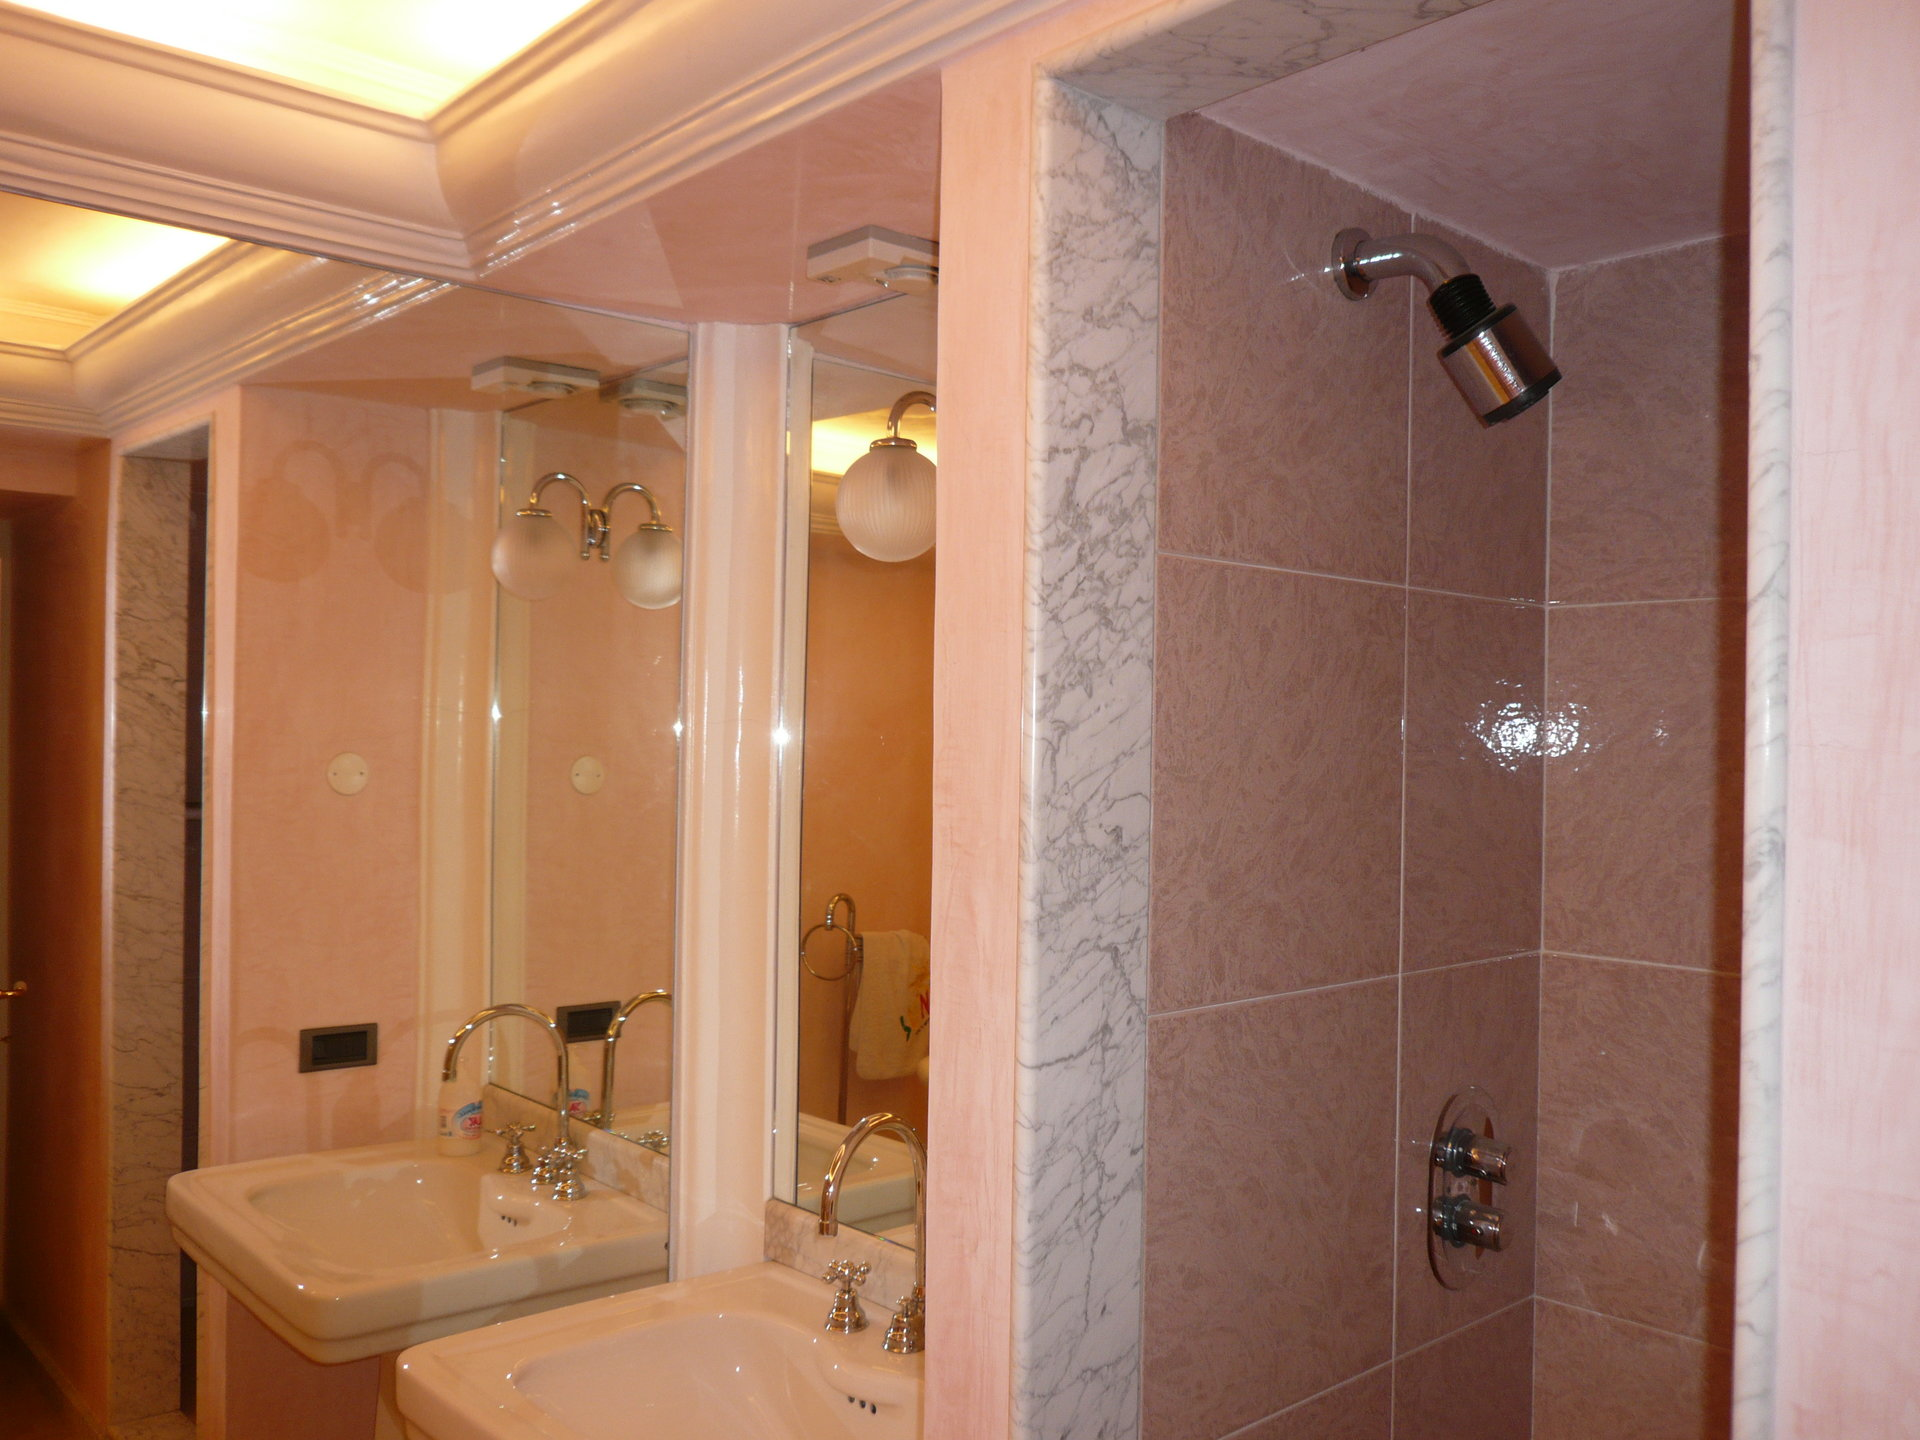 Historic villa for sale in Luino - bathroom